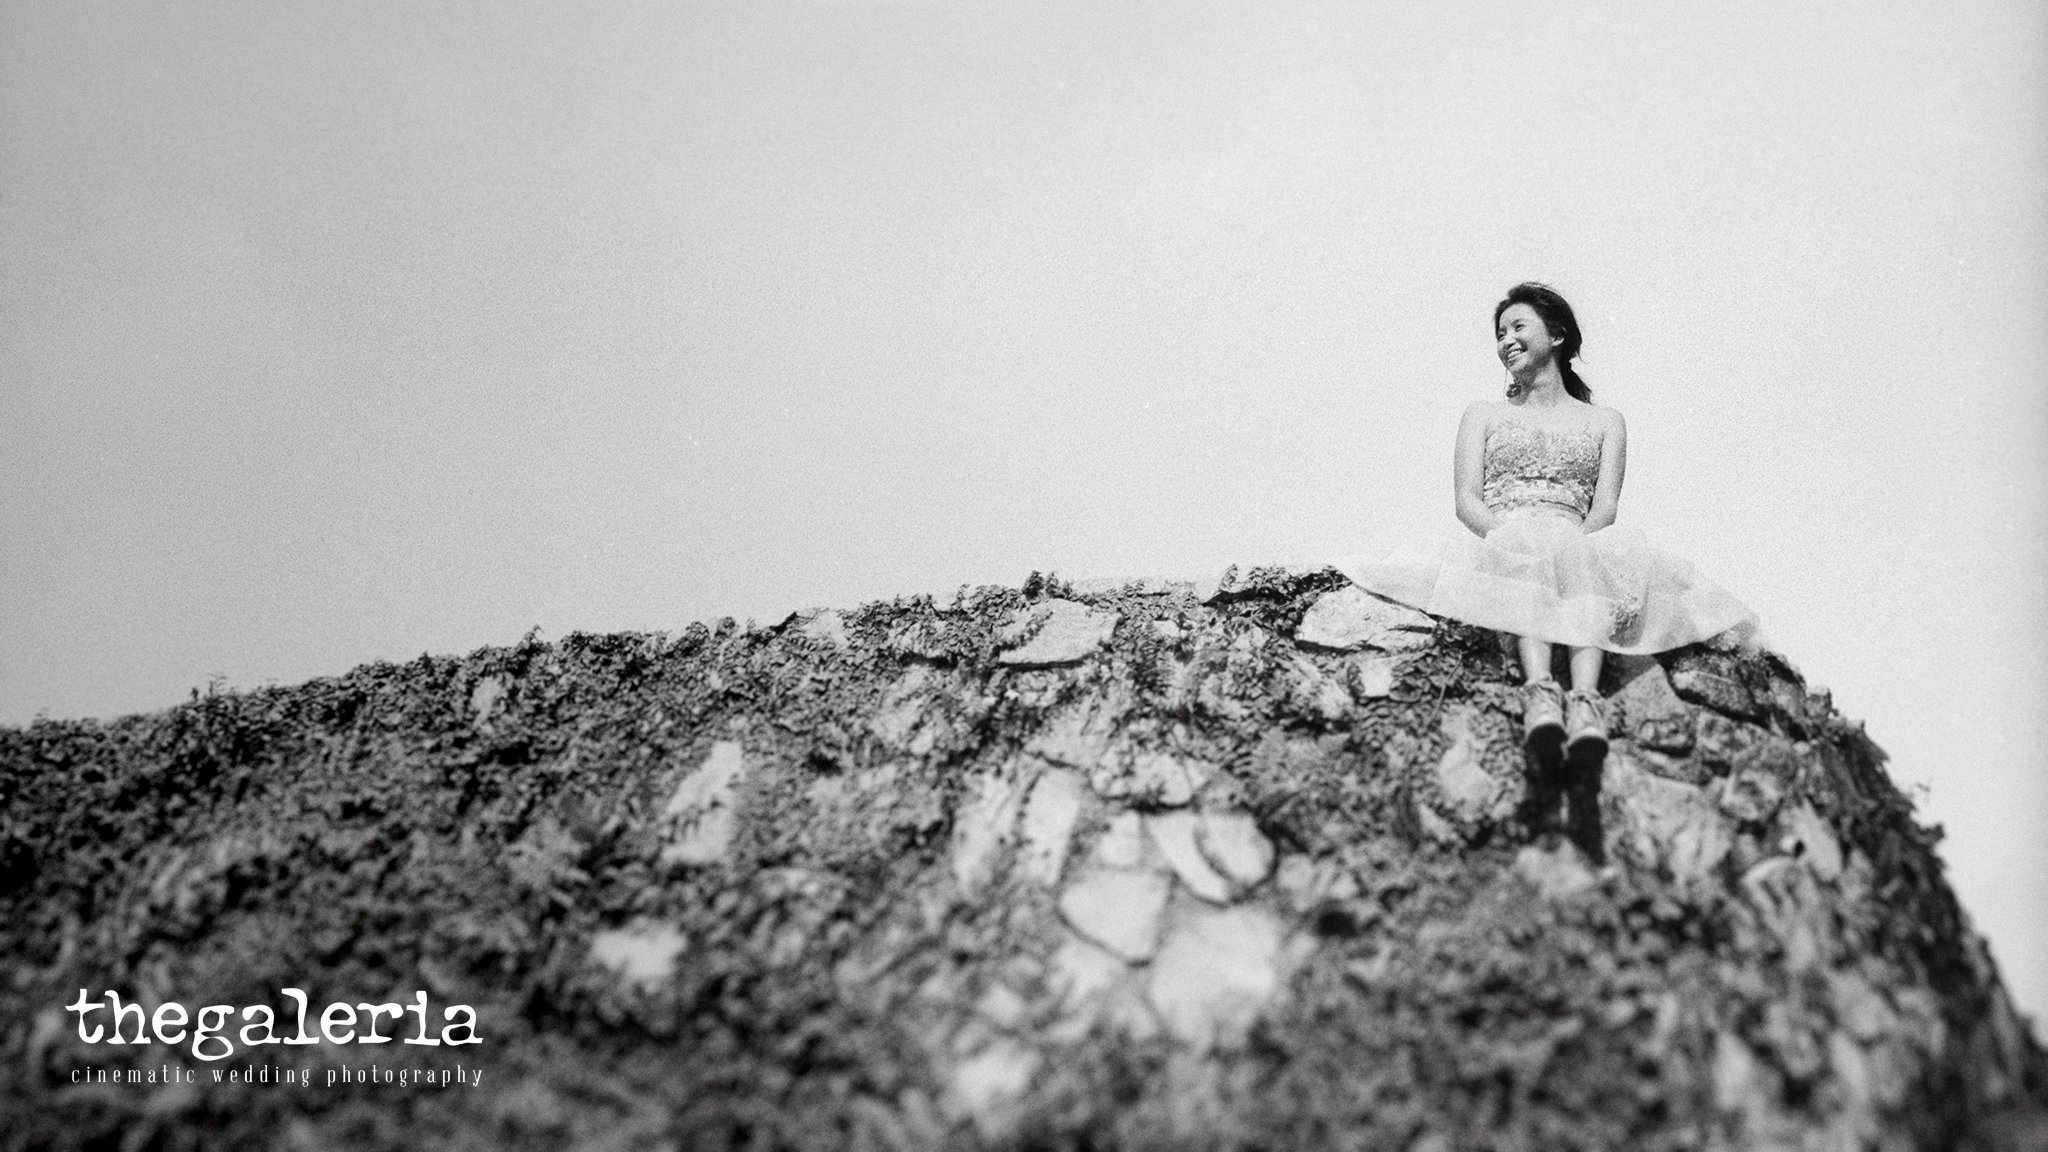 Wedding Photography by Brian Ho from thegaleria